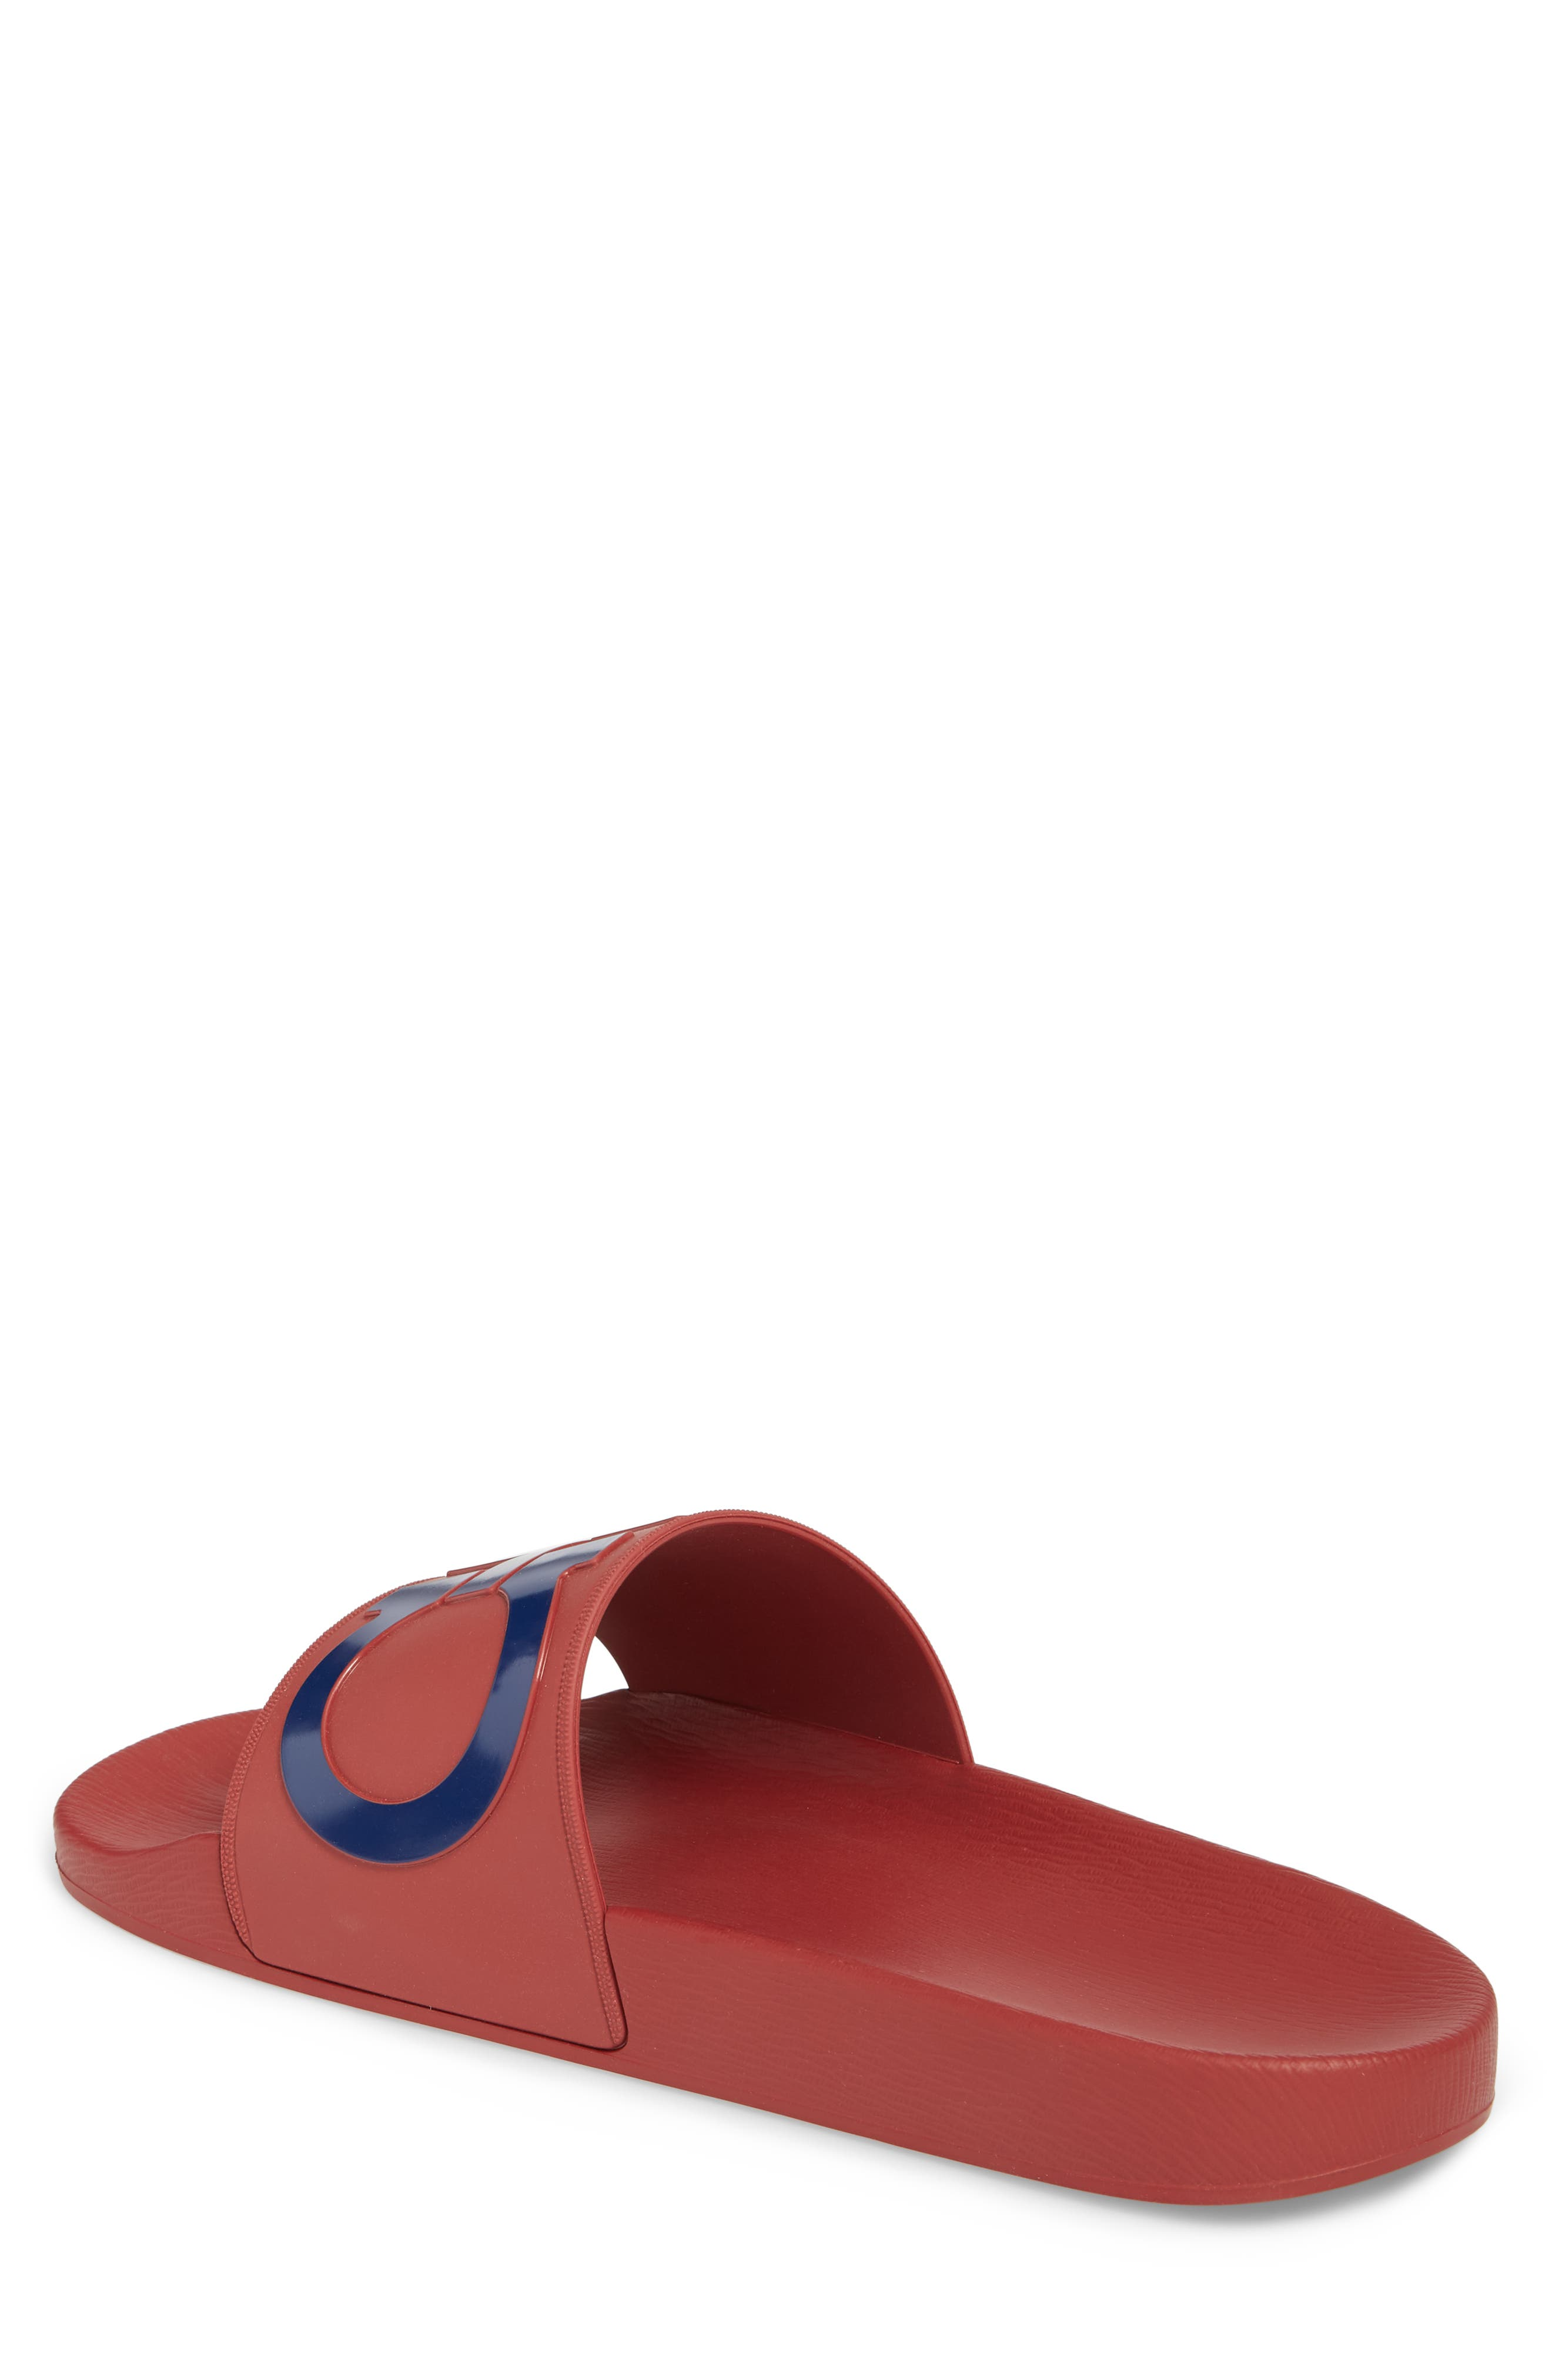 Groove Slide Sandal,                             Alternate thumbnail 2, color,                             Rouge